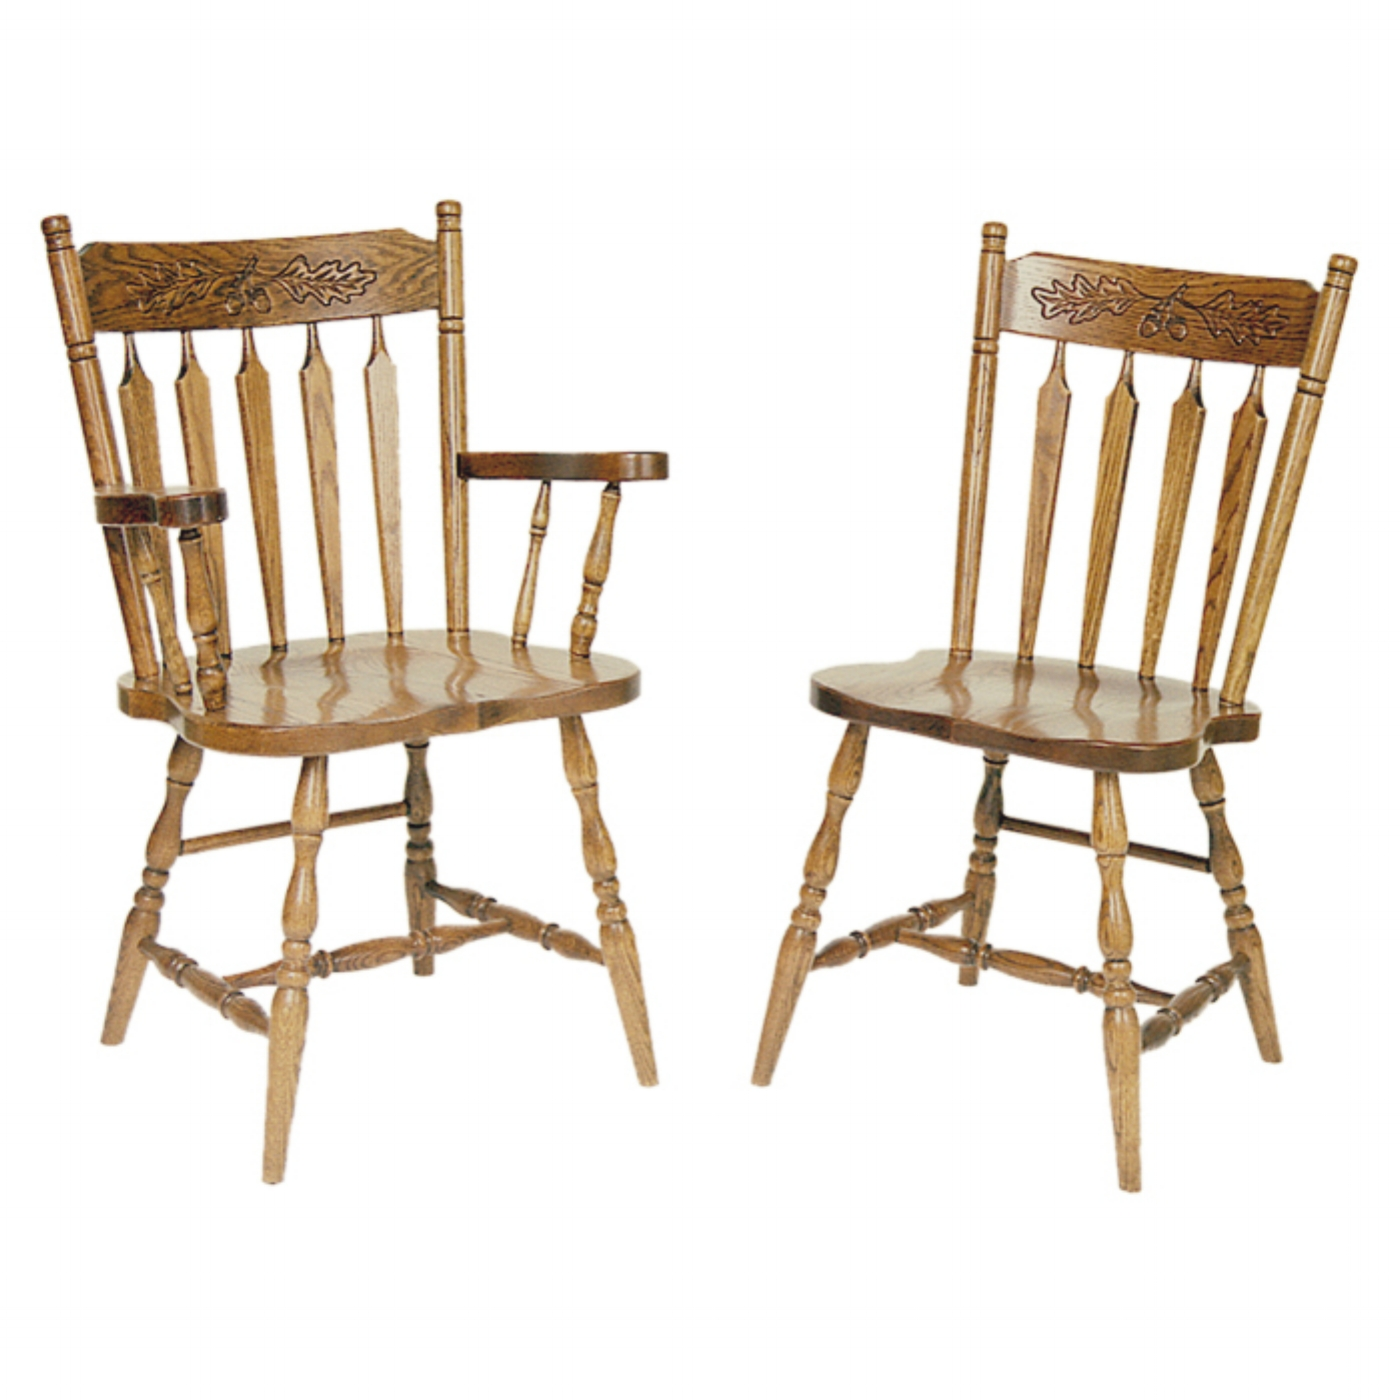 Penns Creek Acorn Colonial Arrow-Back Chairs    Starting at: $324.99